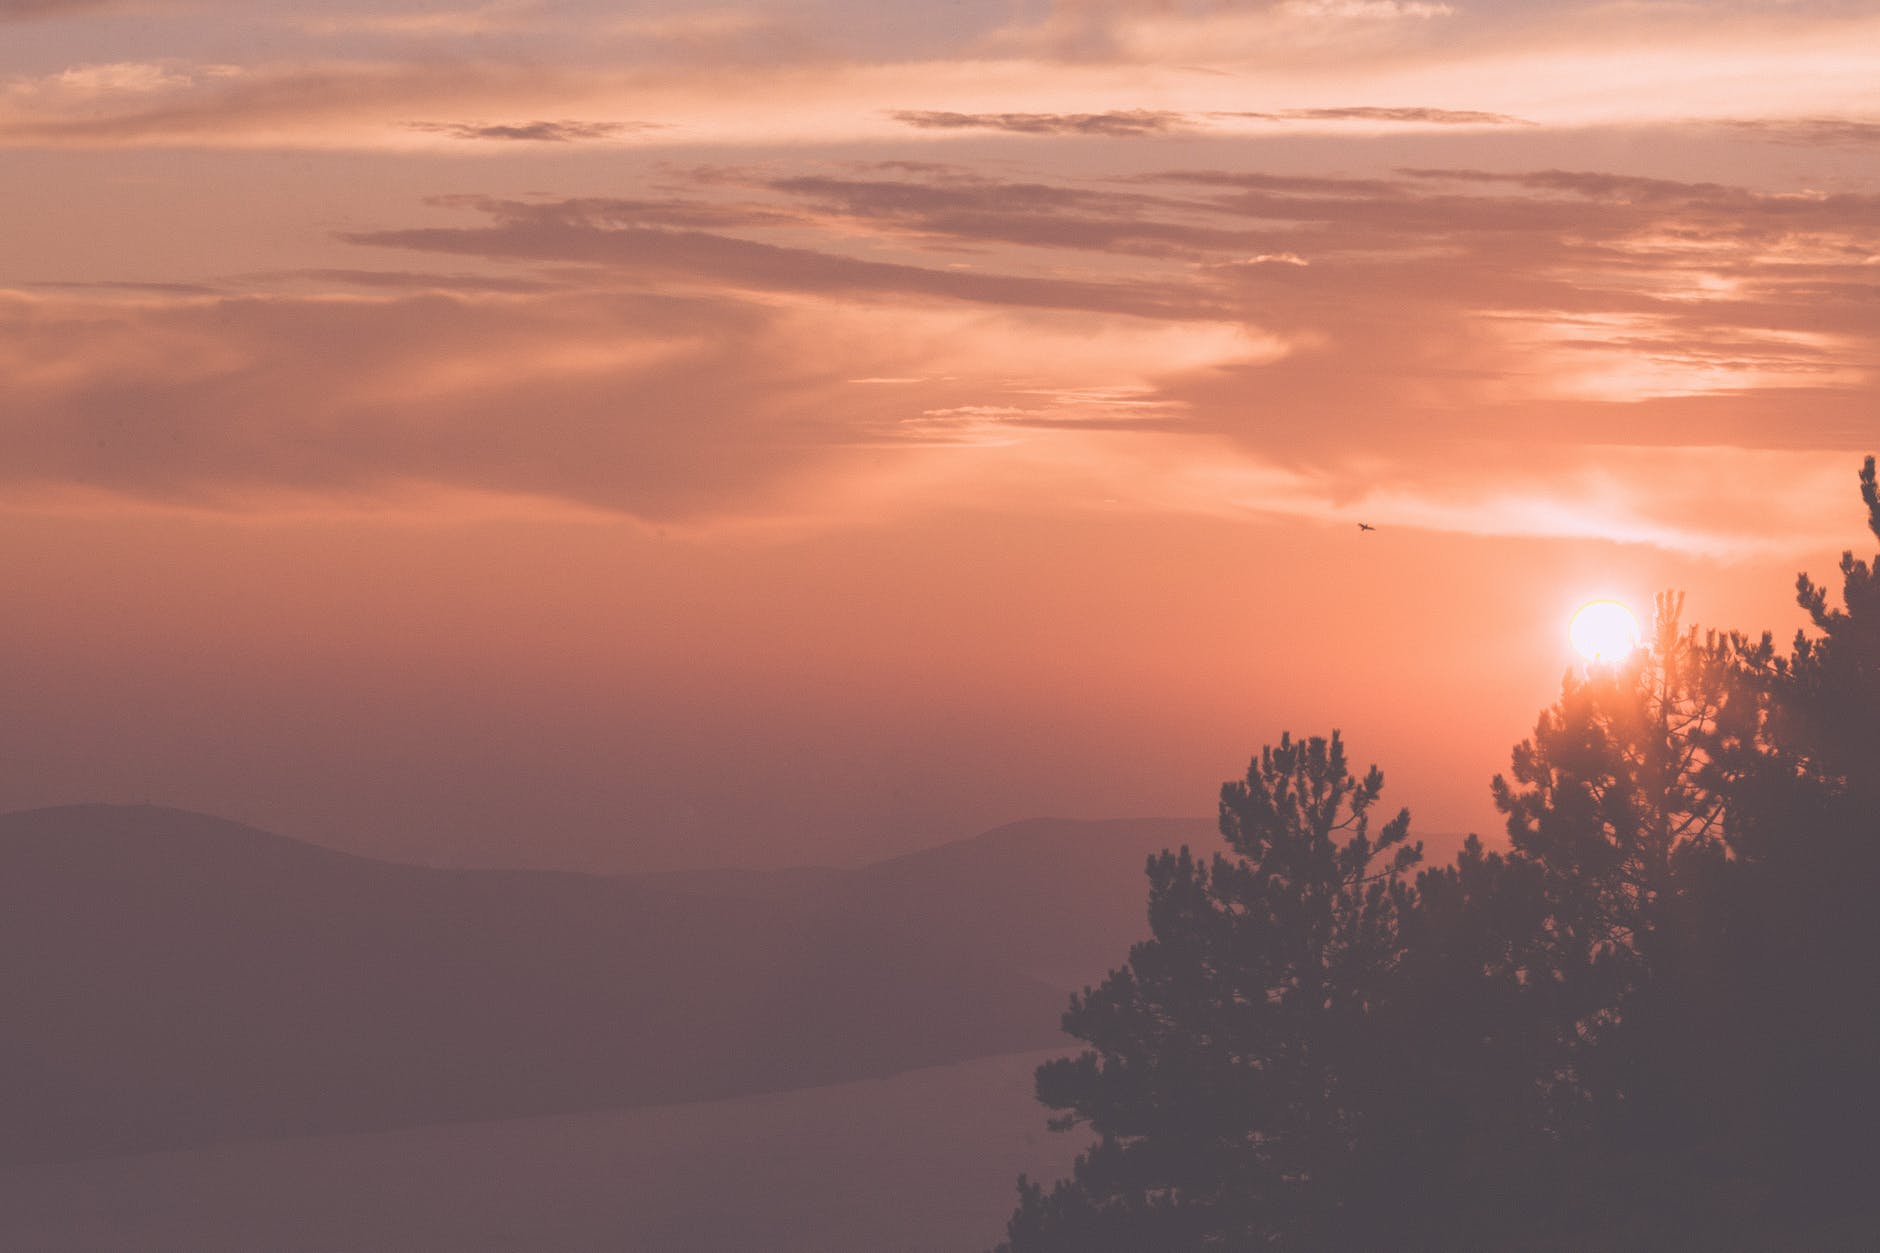 sunset sky over mountainous terrain with growing trees